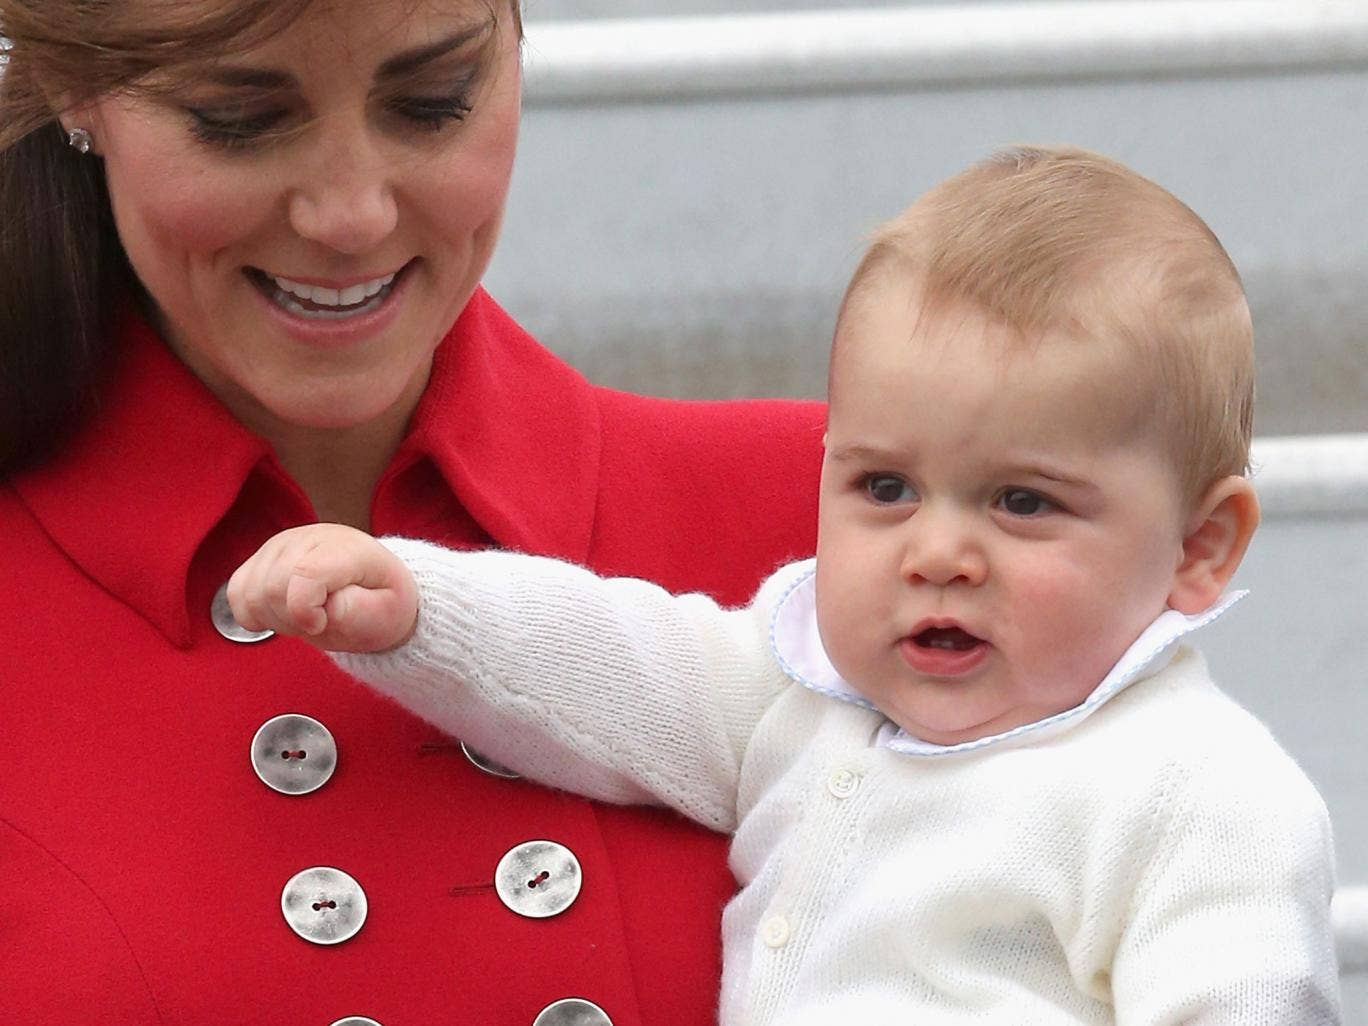 Over a period of three weeks the Royal trio will visit 12 Cities in New Zealand and Australia taking part in activities as wide ranging as a yacht race in Auckland Harbour, paying their respects to victims of the 2011 earthquake in Christchurch and visiti